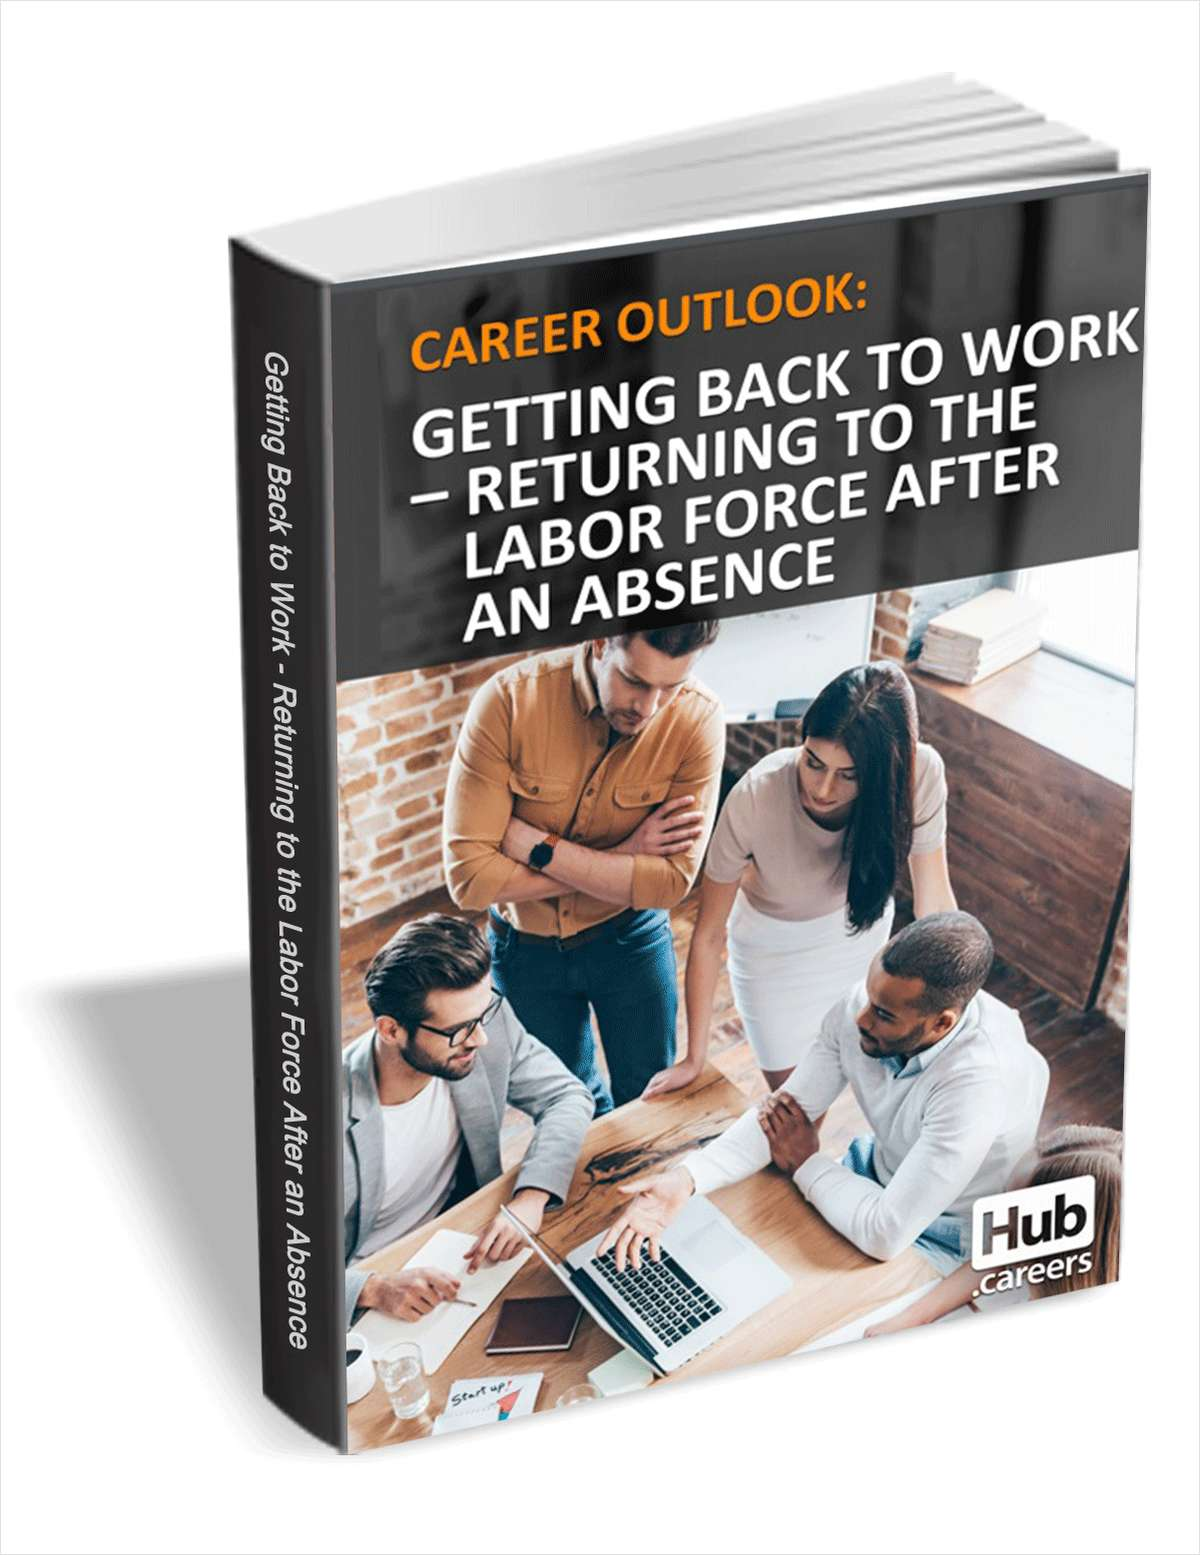 Getting Back to Work: Returning to the Labor Force After an Absence